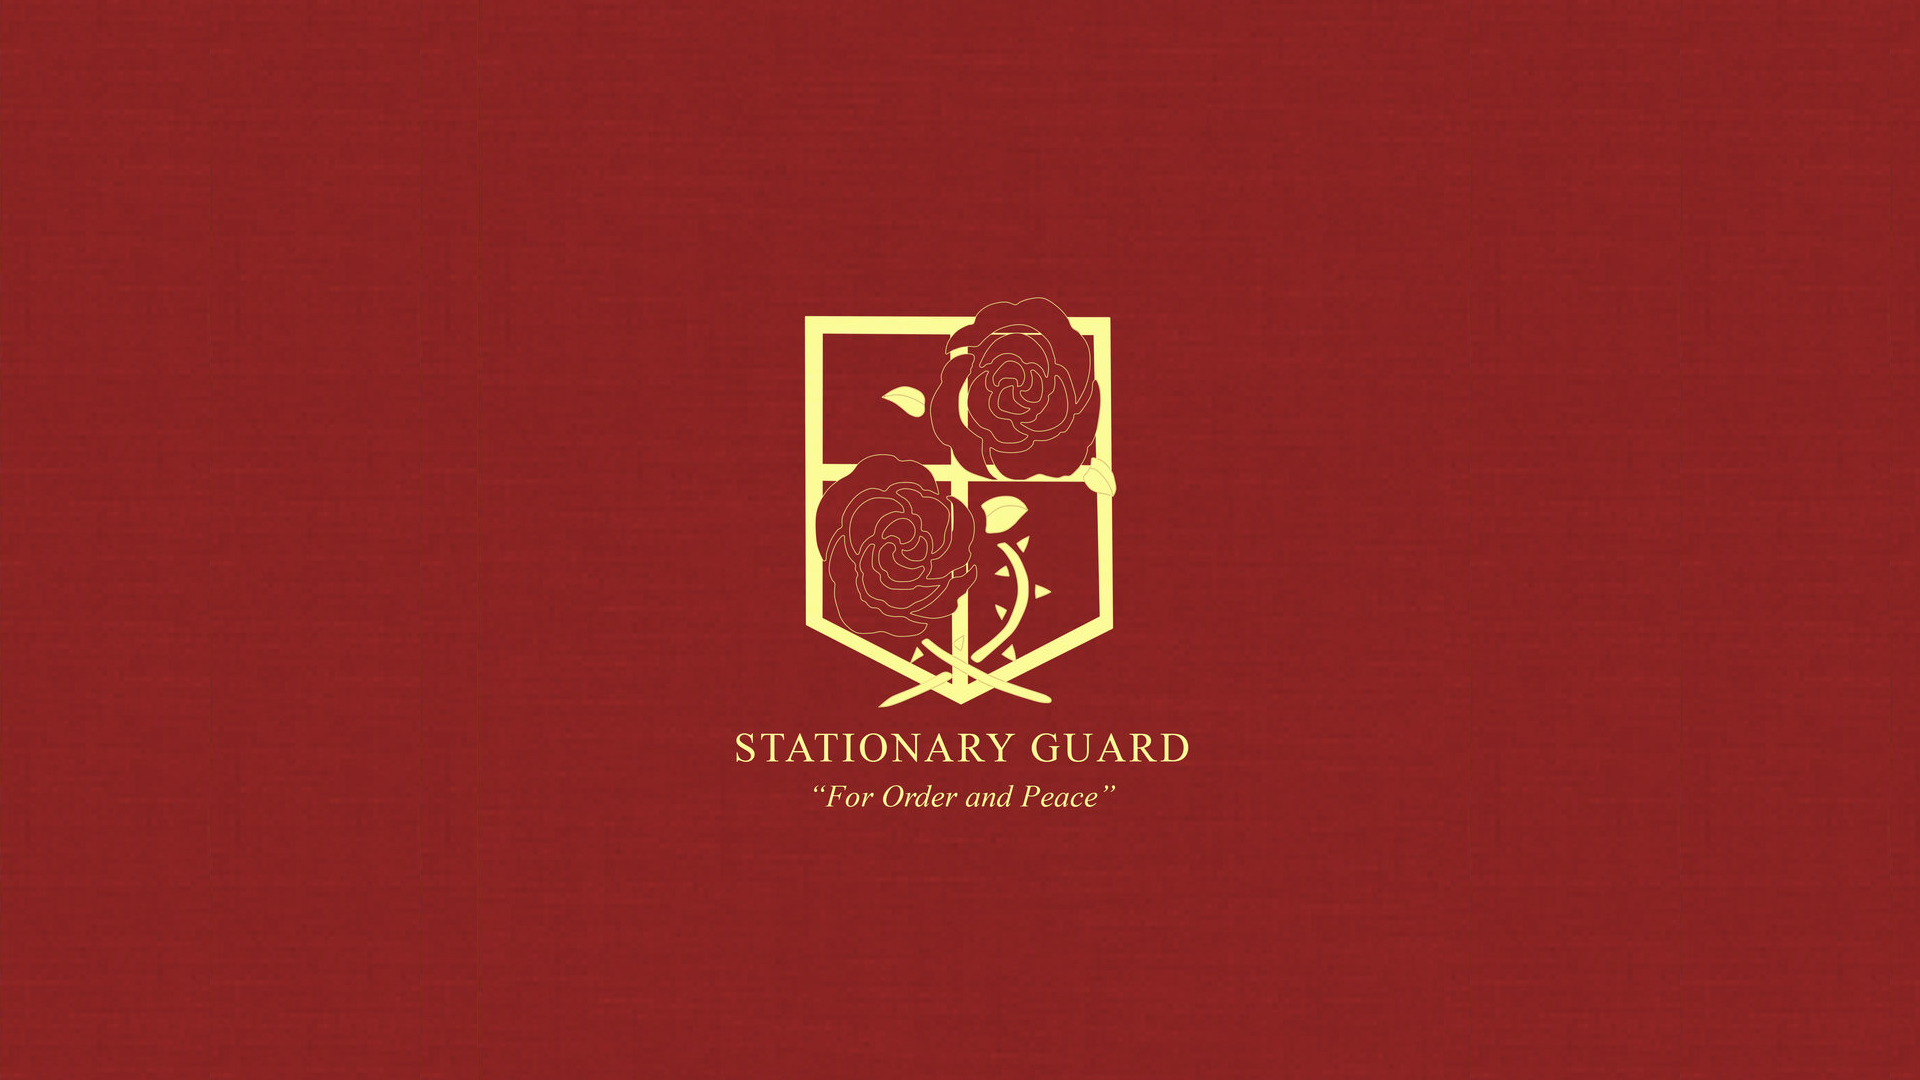 staionary guard emblem attack - photo #6